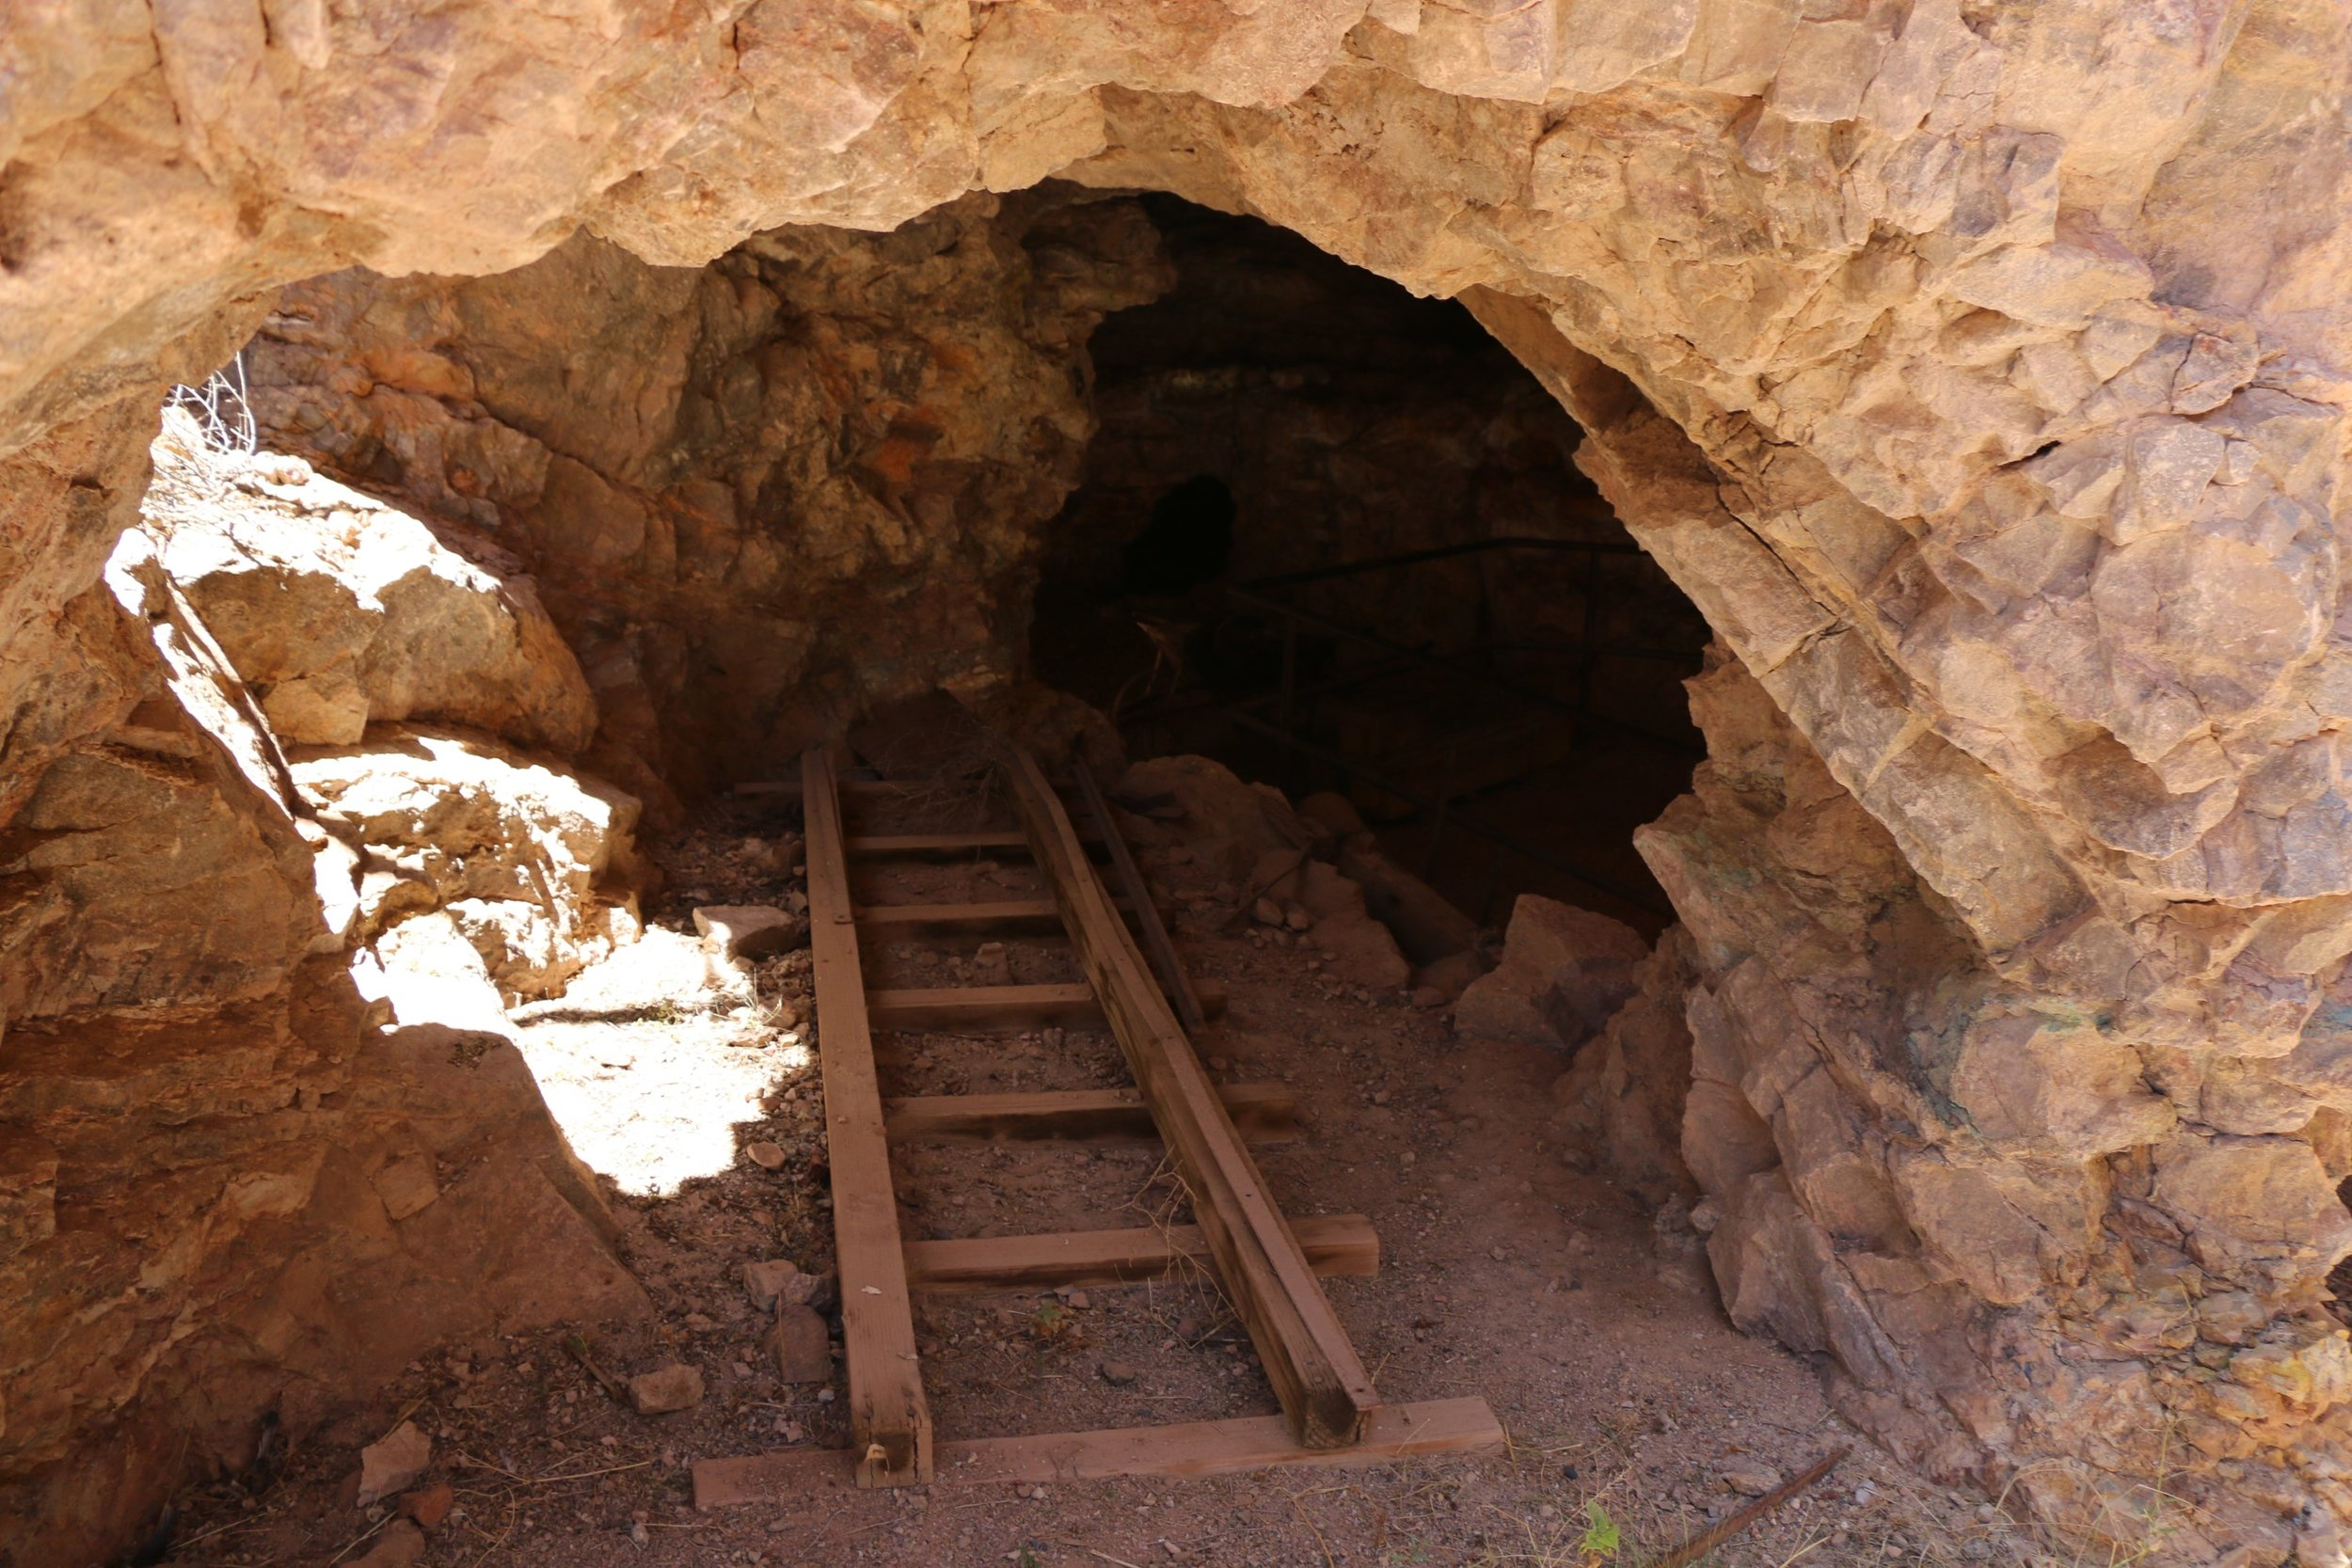 An old ladder sits near the entrance of the Good Enough silver mine.